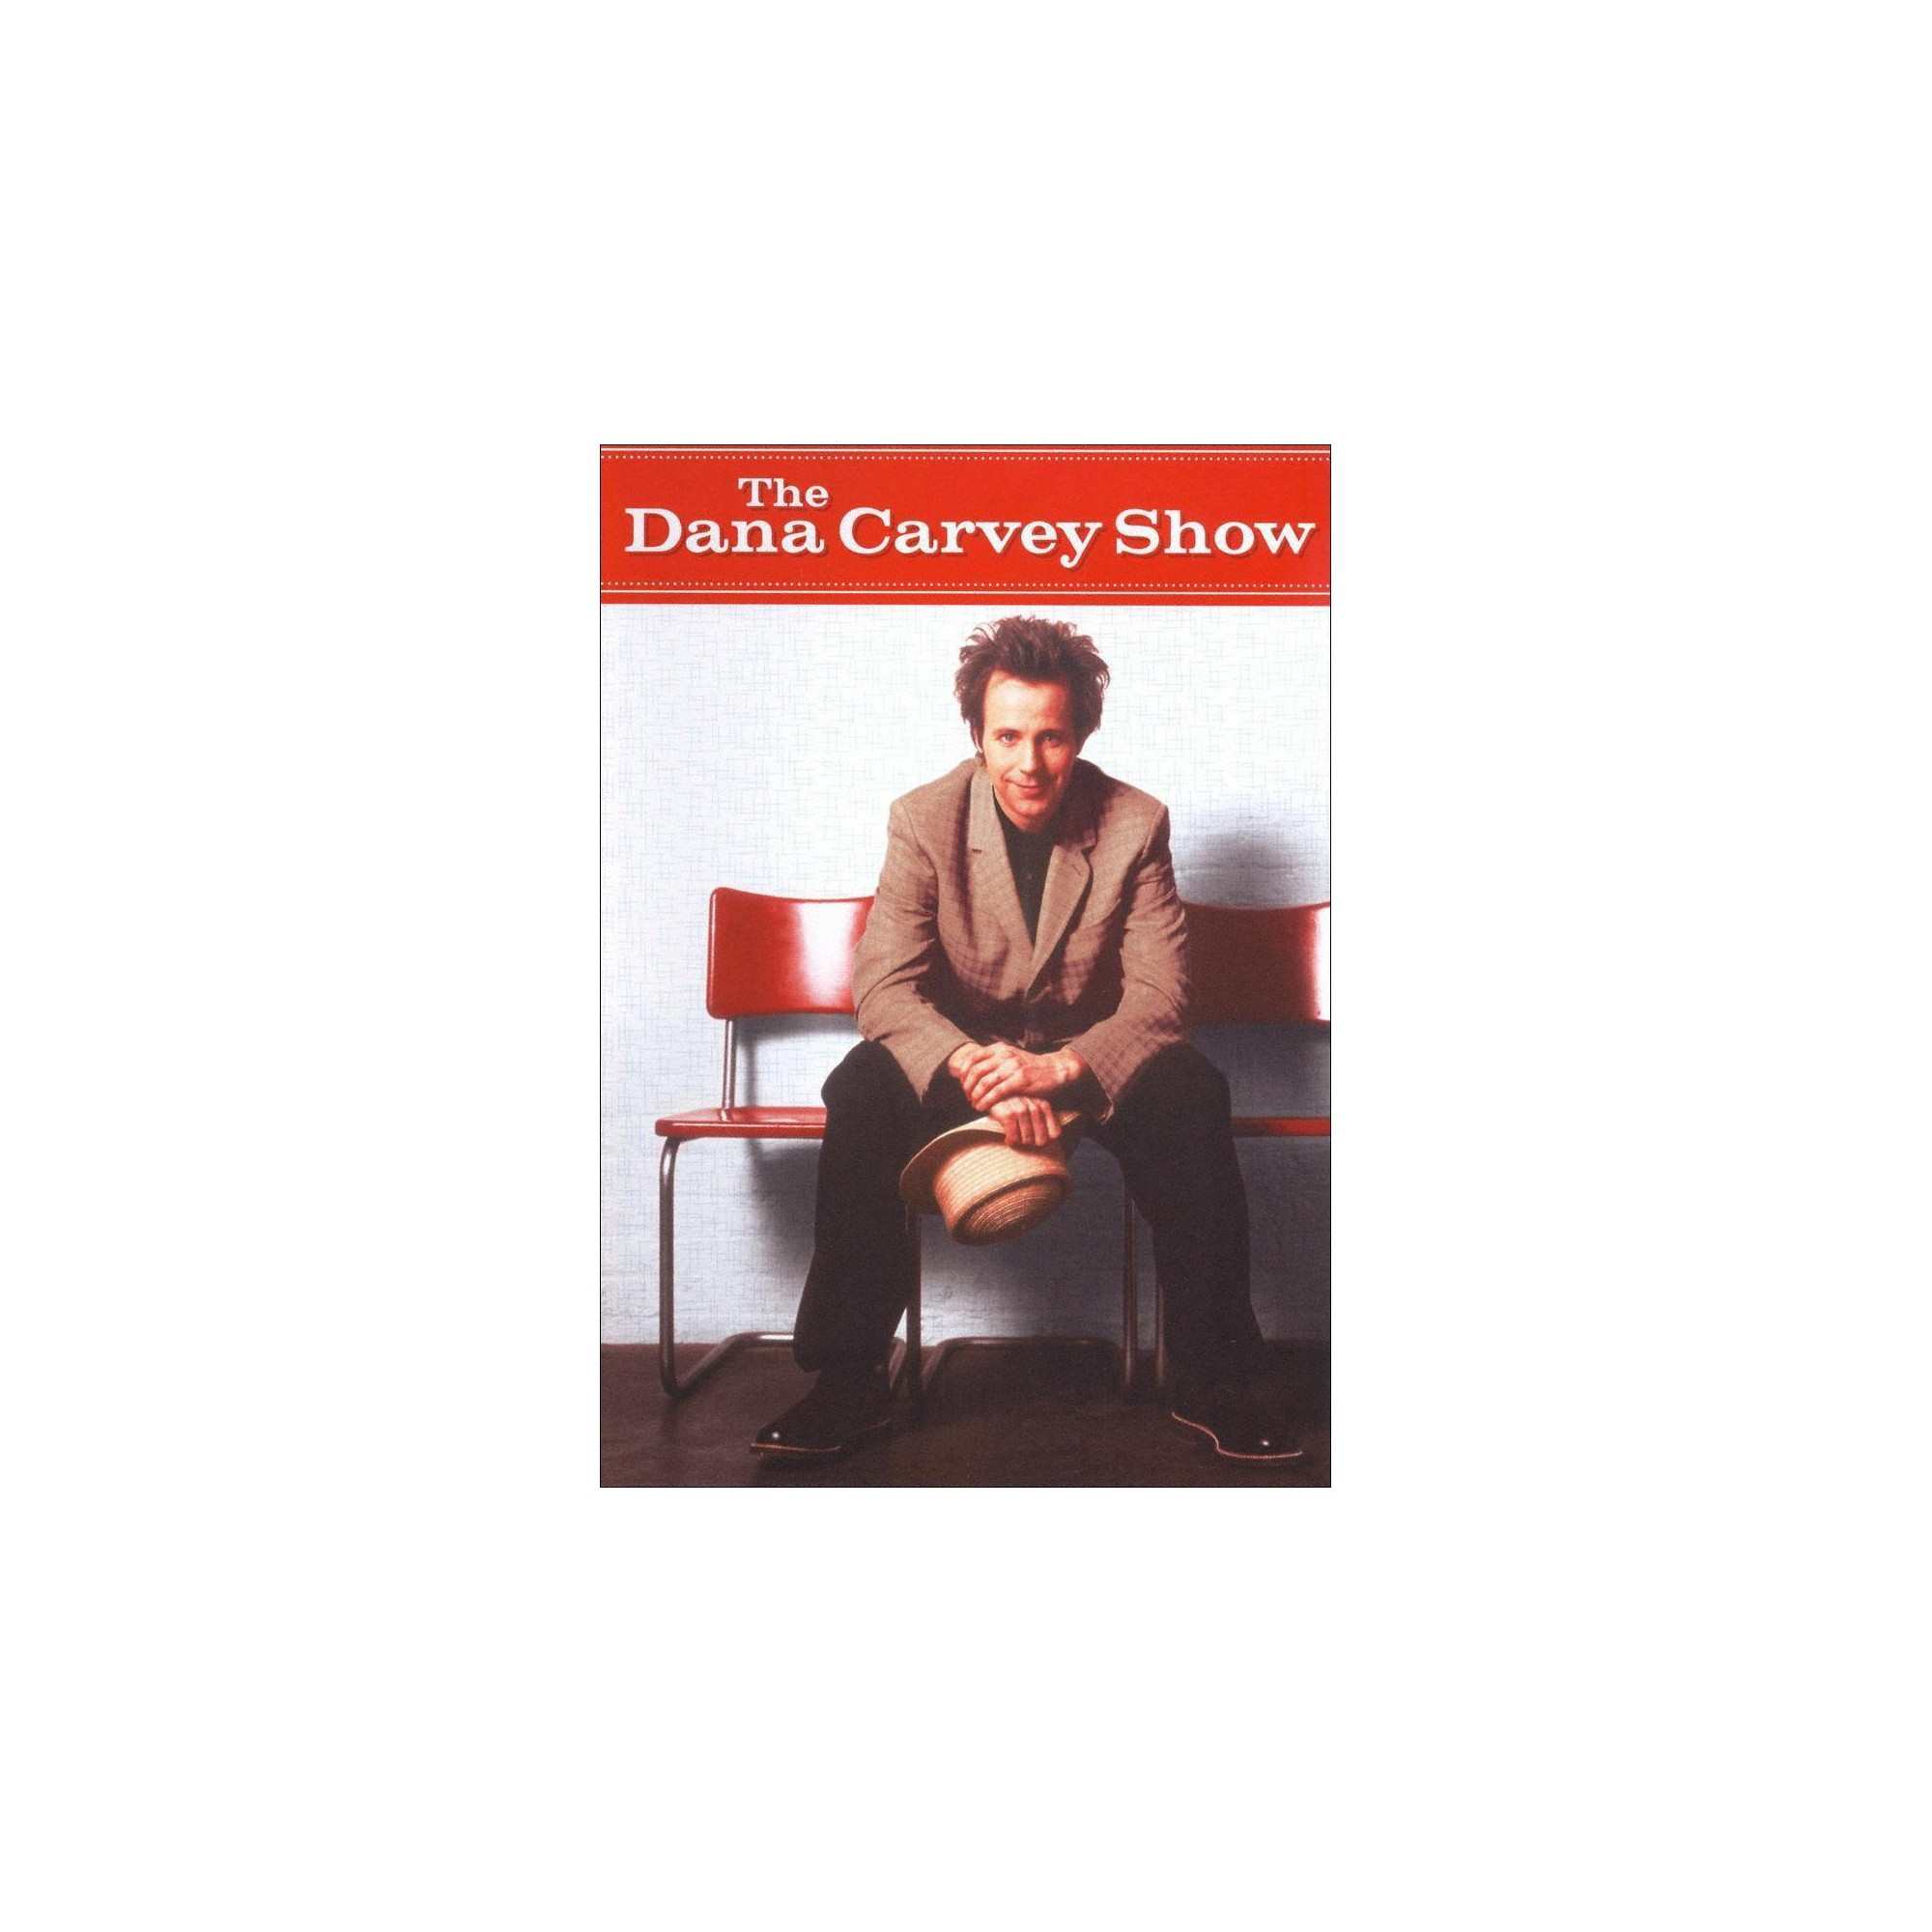 dana carvey show (dvd), movies | dana carvey and products